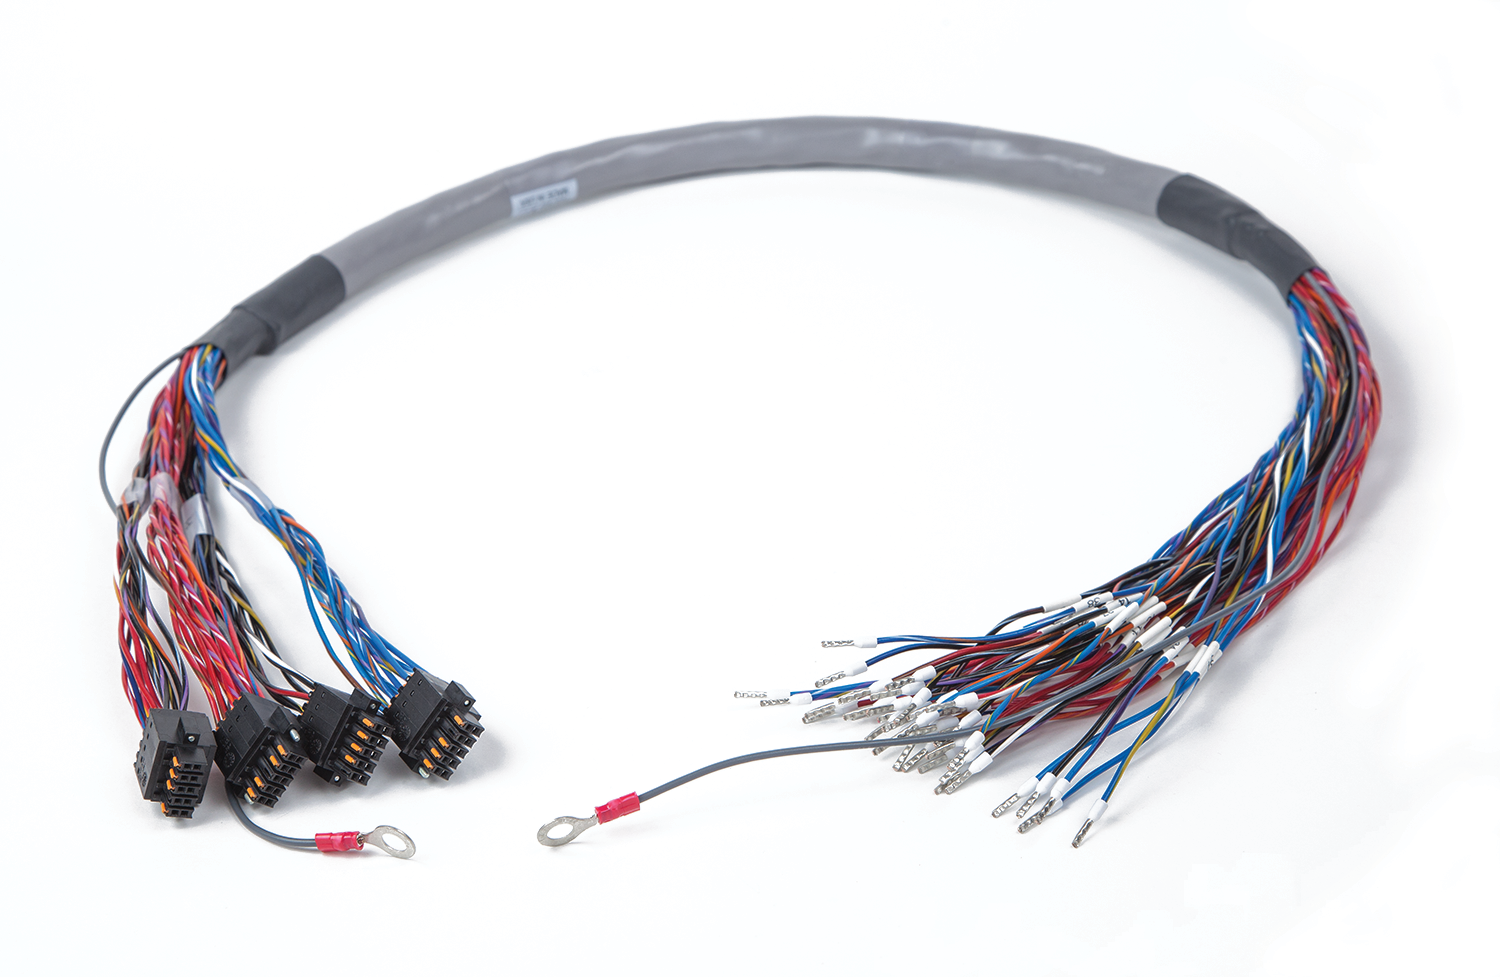 Schneider_Modicon_Quantum Cable_cmyk1